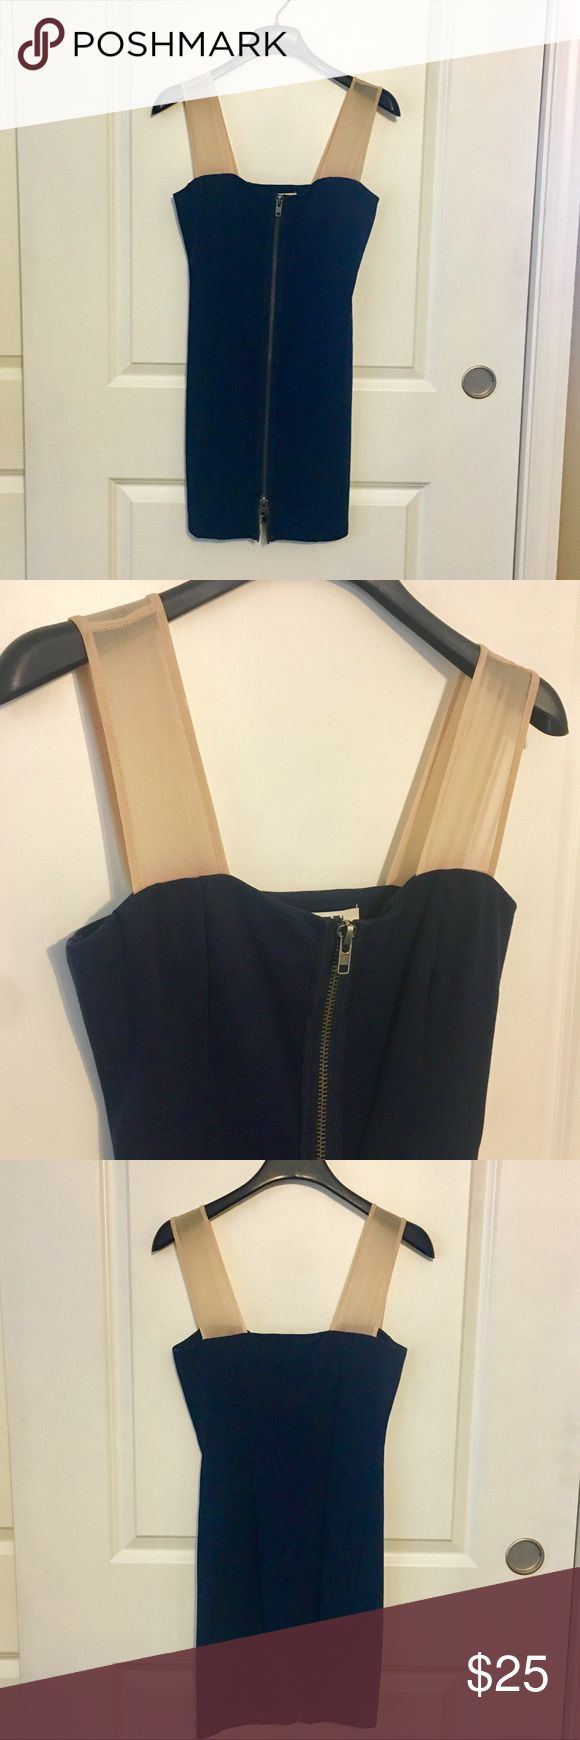 NWOT BB Dakota dress Navy blue zip front dress from BB Dakota. Nude mesh straps, working double zipper, zips up or down. Never worn, new without tags! BB Dakota Dresses Mini